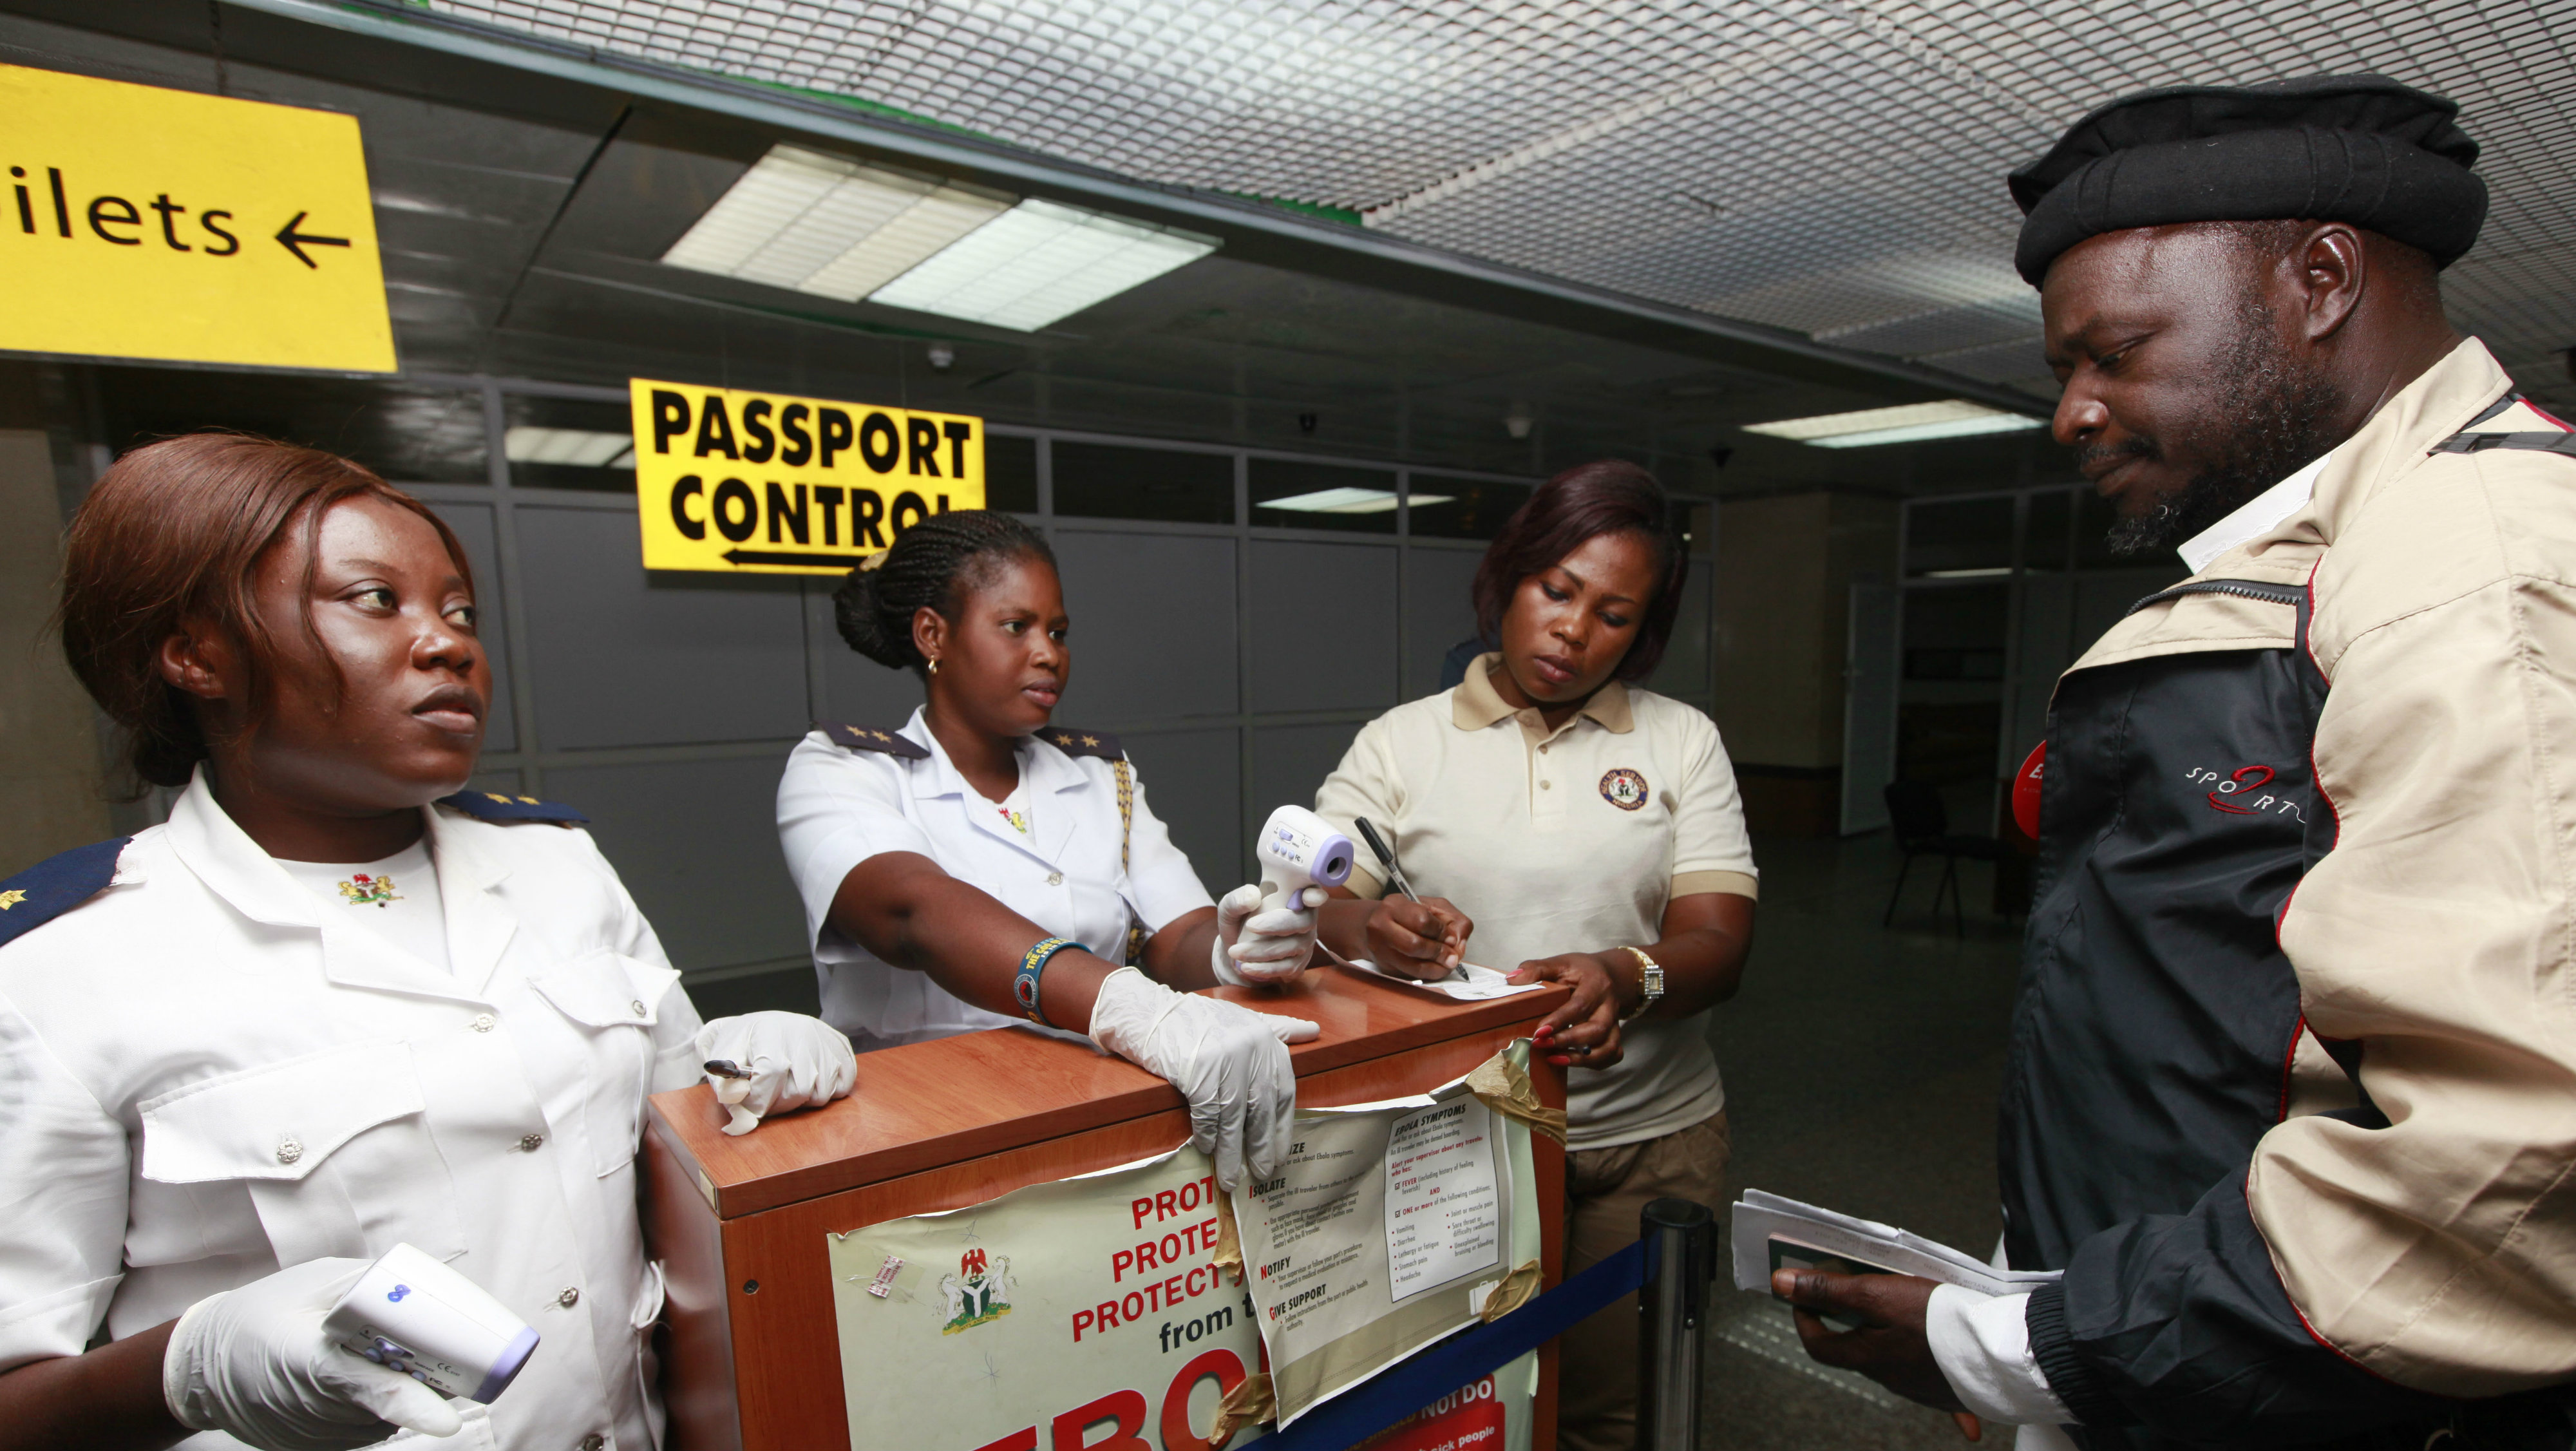 Health port officials uses a thermometer to screen passengers at the arrival hall of Murtala Mohammed International airport in Lagos, Nigeria Monday, Oct. 20, 2014.